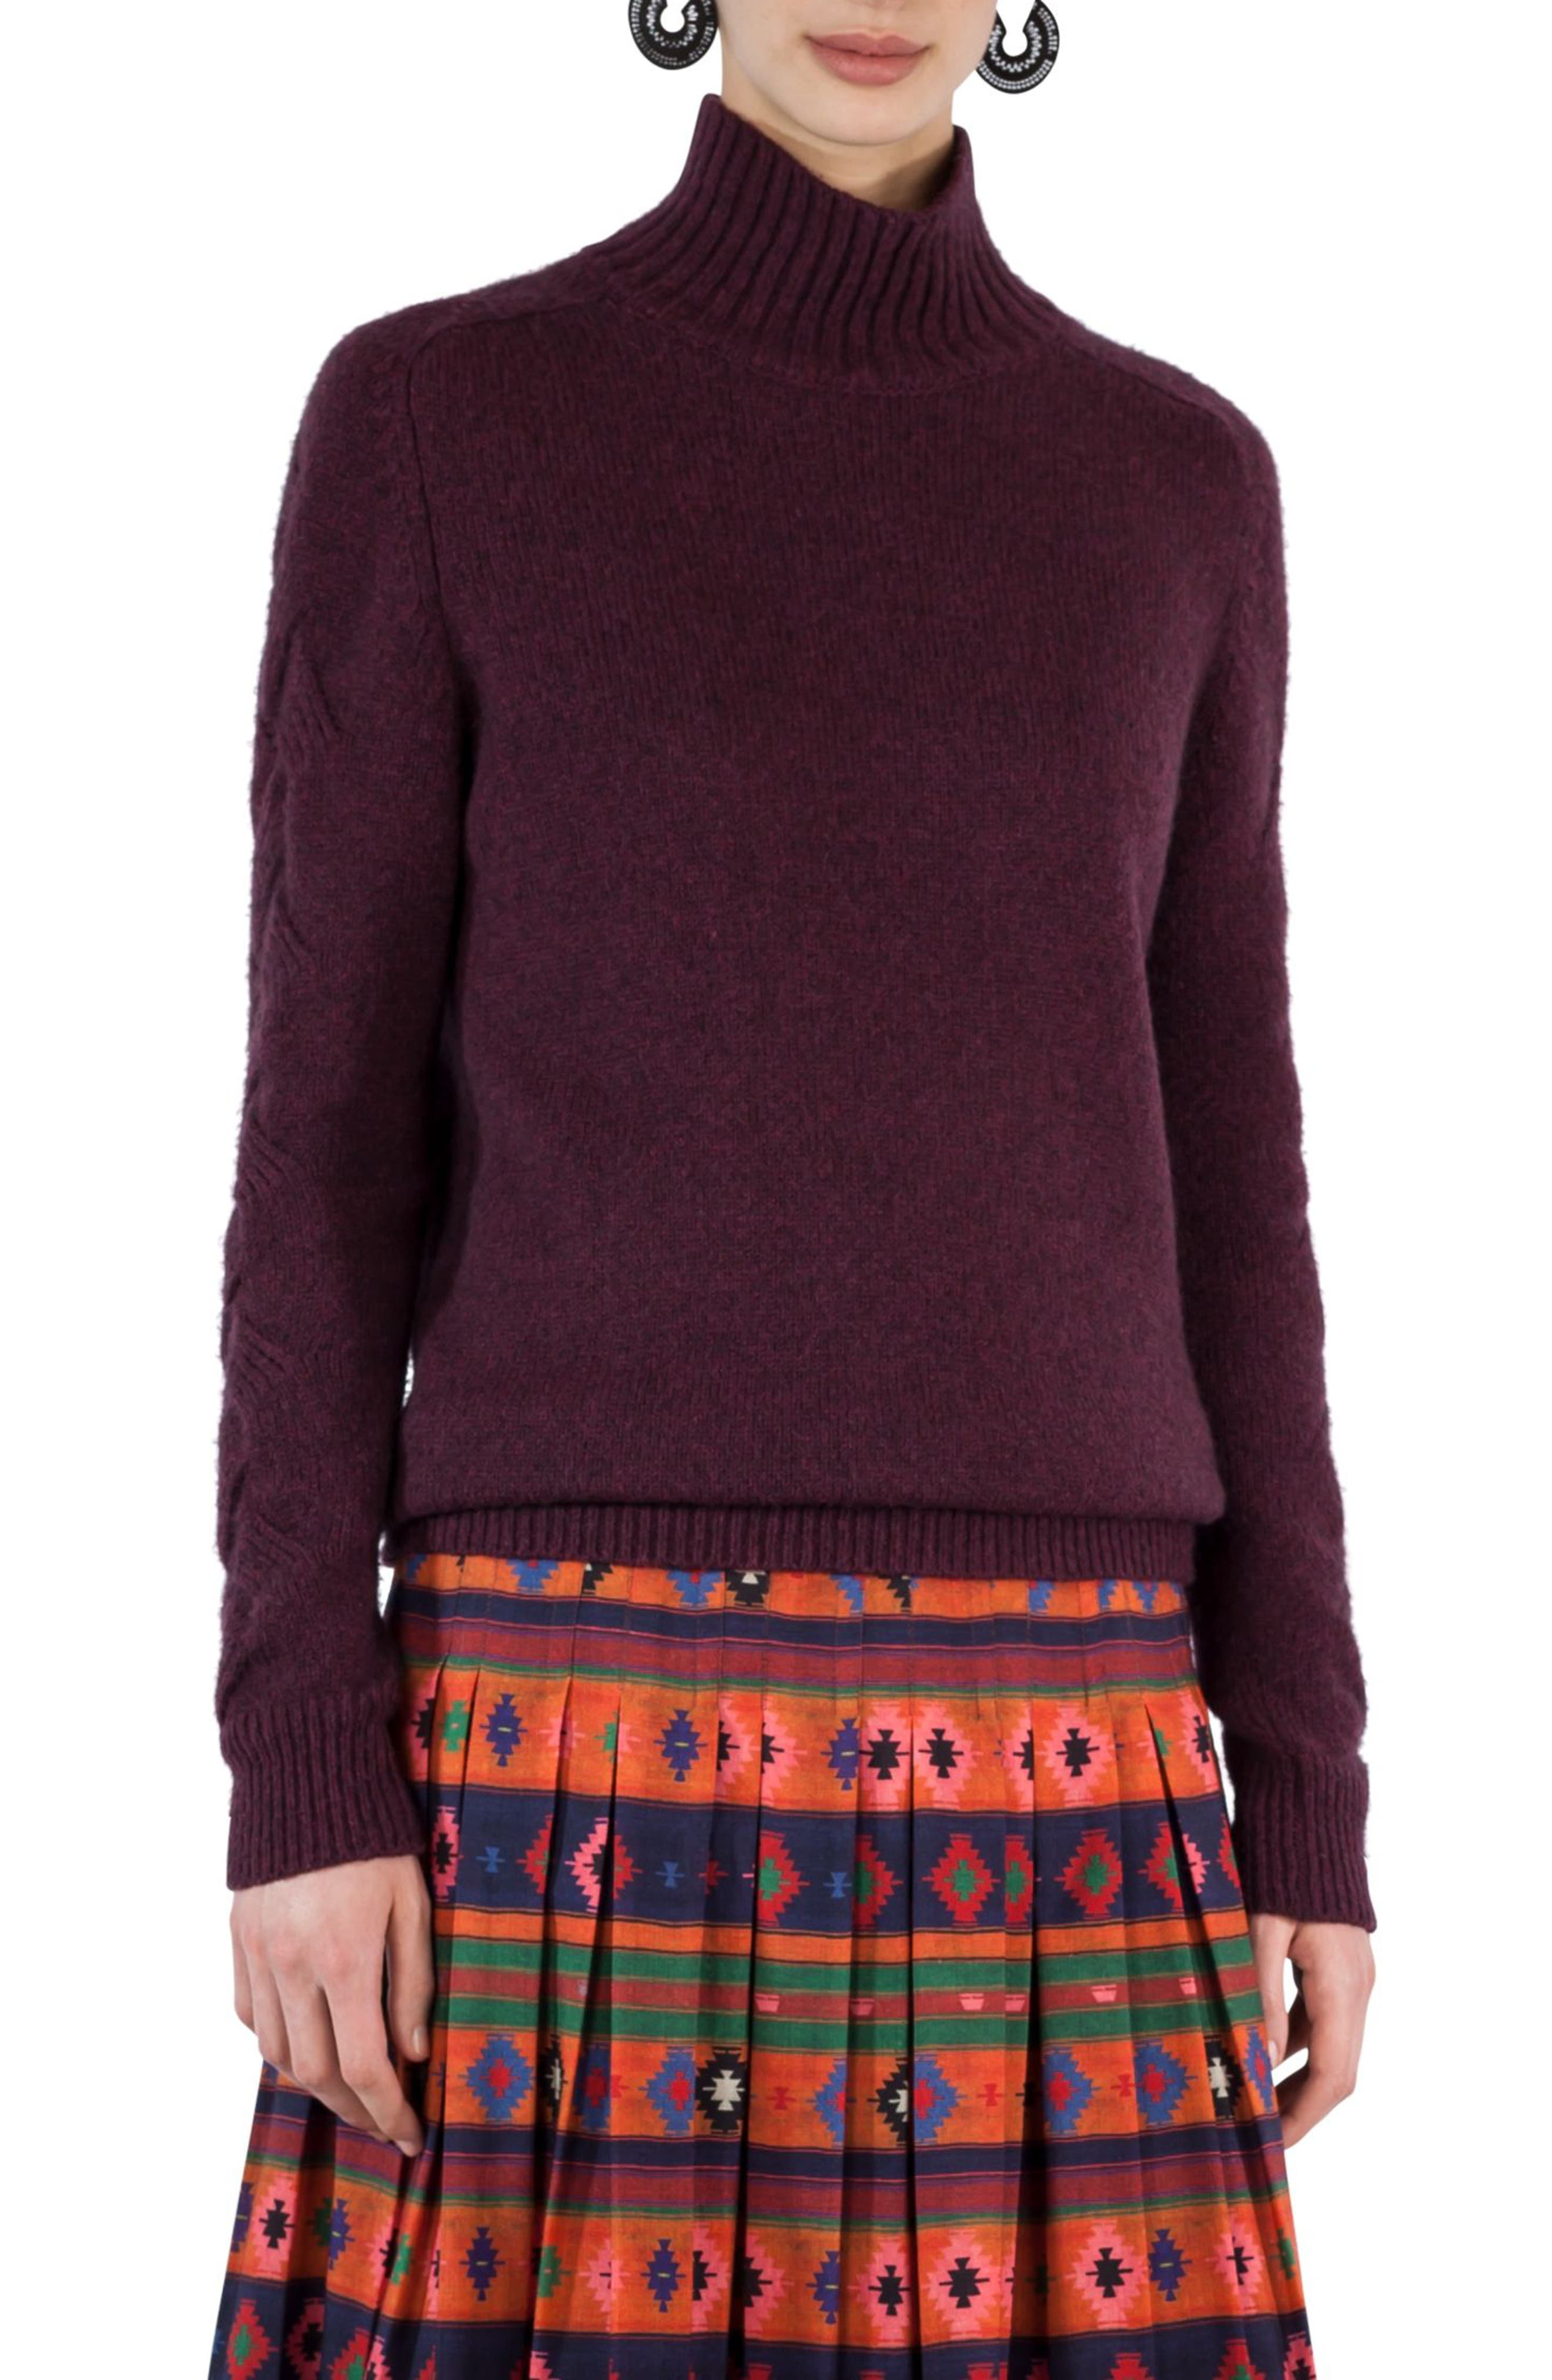 Wool Blend Turtleneck Sweater,                         Main,                         color, 930